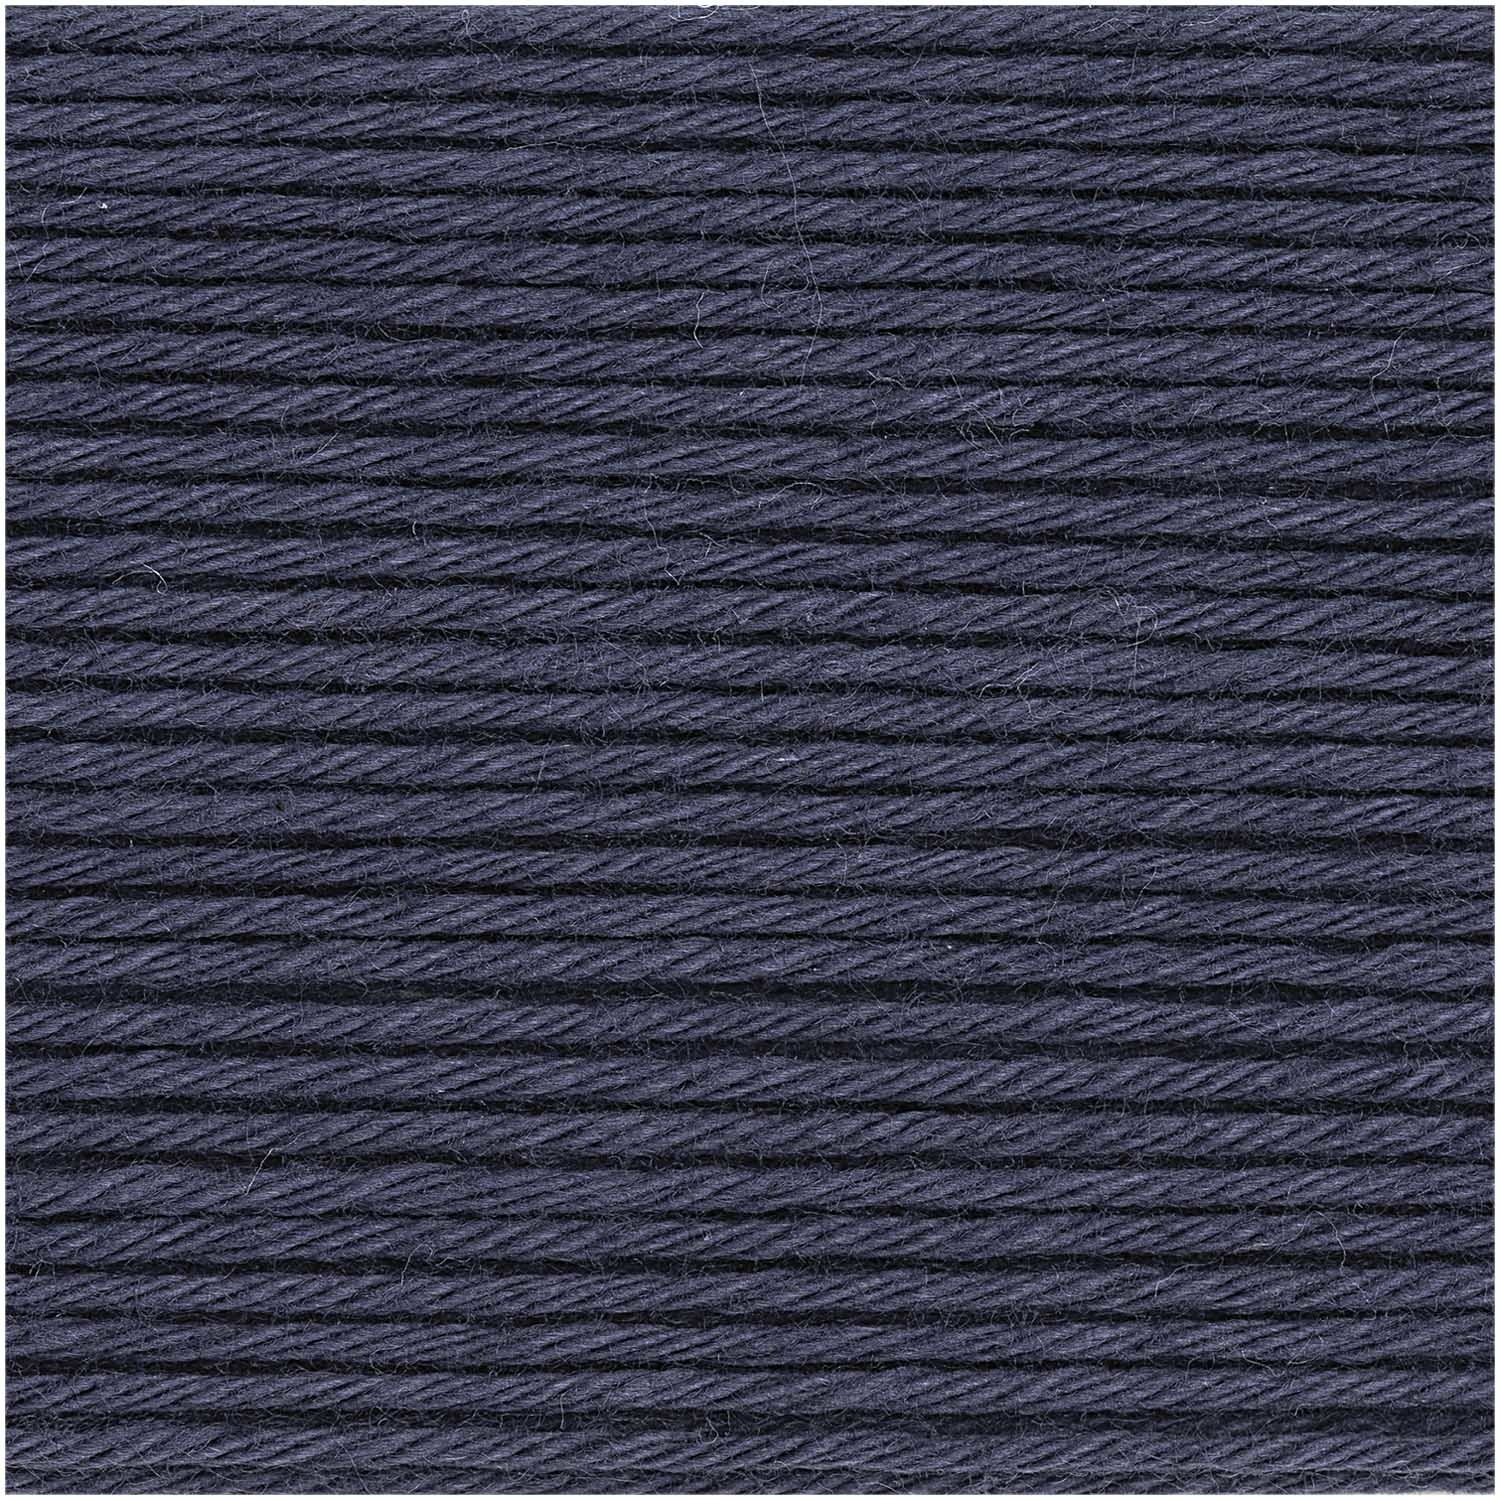 Rico Rico Baby Cotton Soft - 063 - Donkerblauw